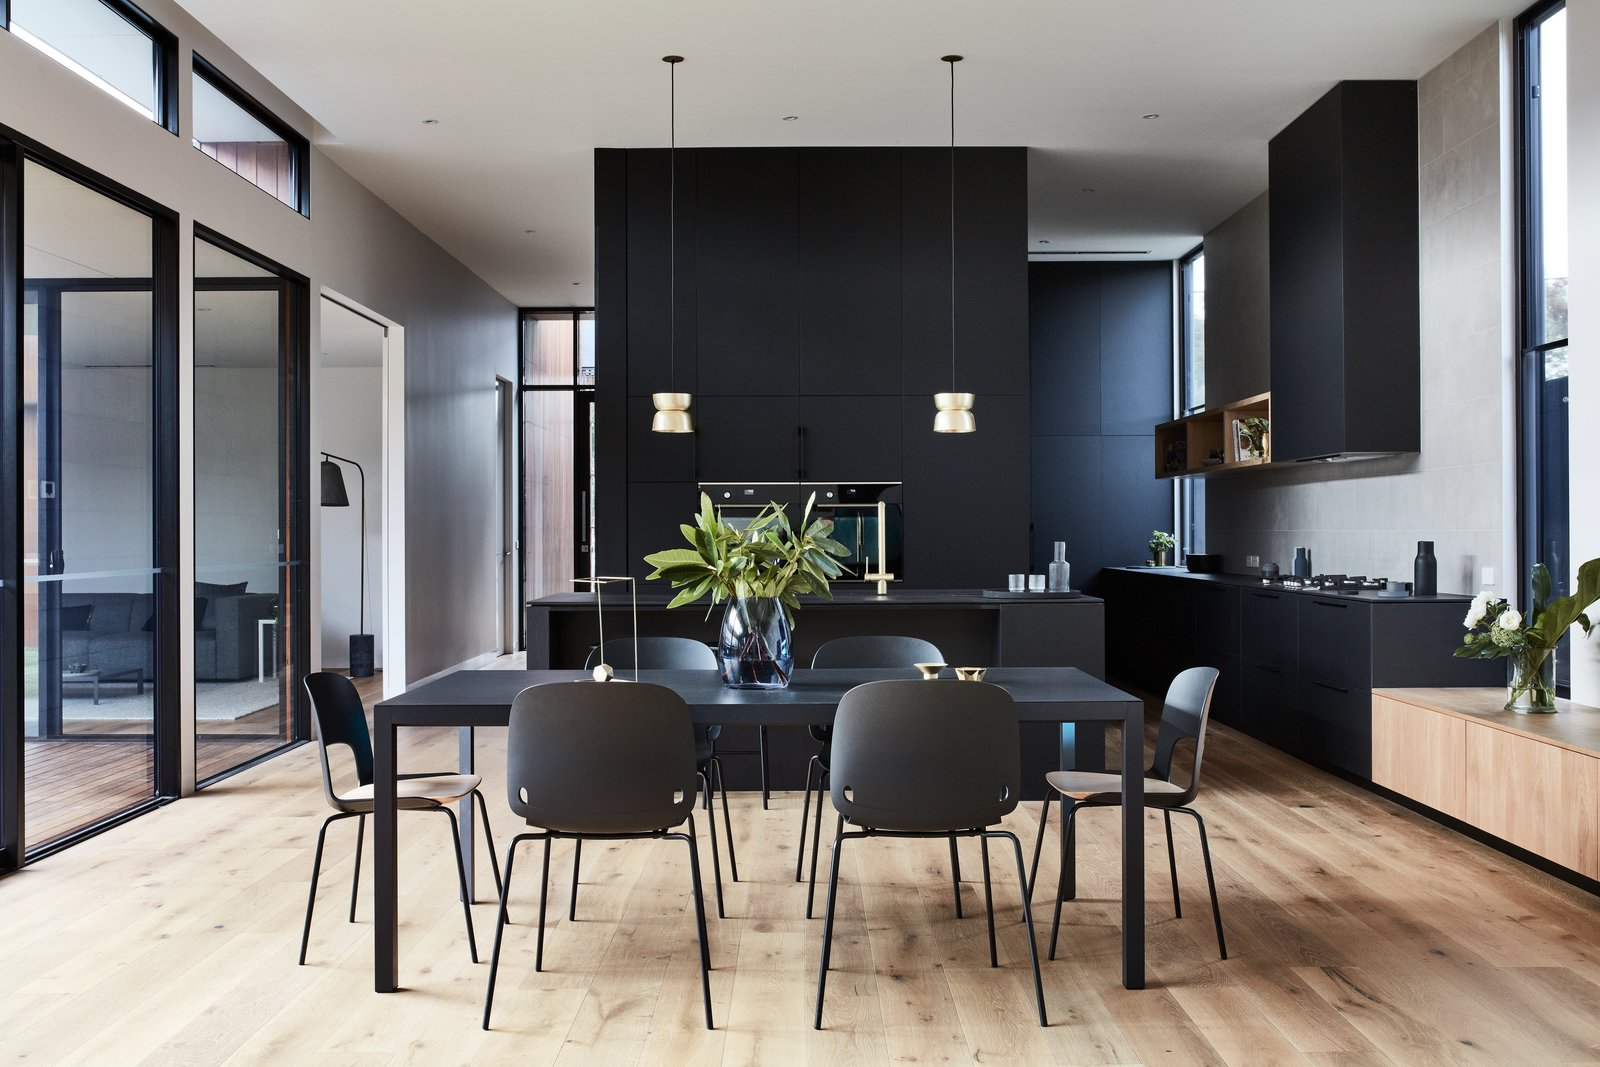 Dining Room, Chair, Pendant Lighting, Medium Hardwood Floor, Table, and Recessed Lighting The simple and stylish dining set complements the dark kitchen.    Photos from A Striking Courtyard Awaits Behind These Bluestone Walls